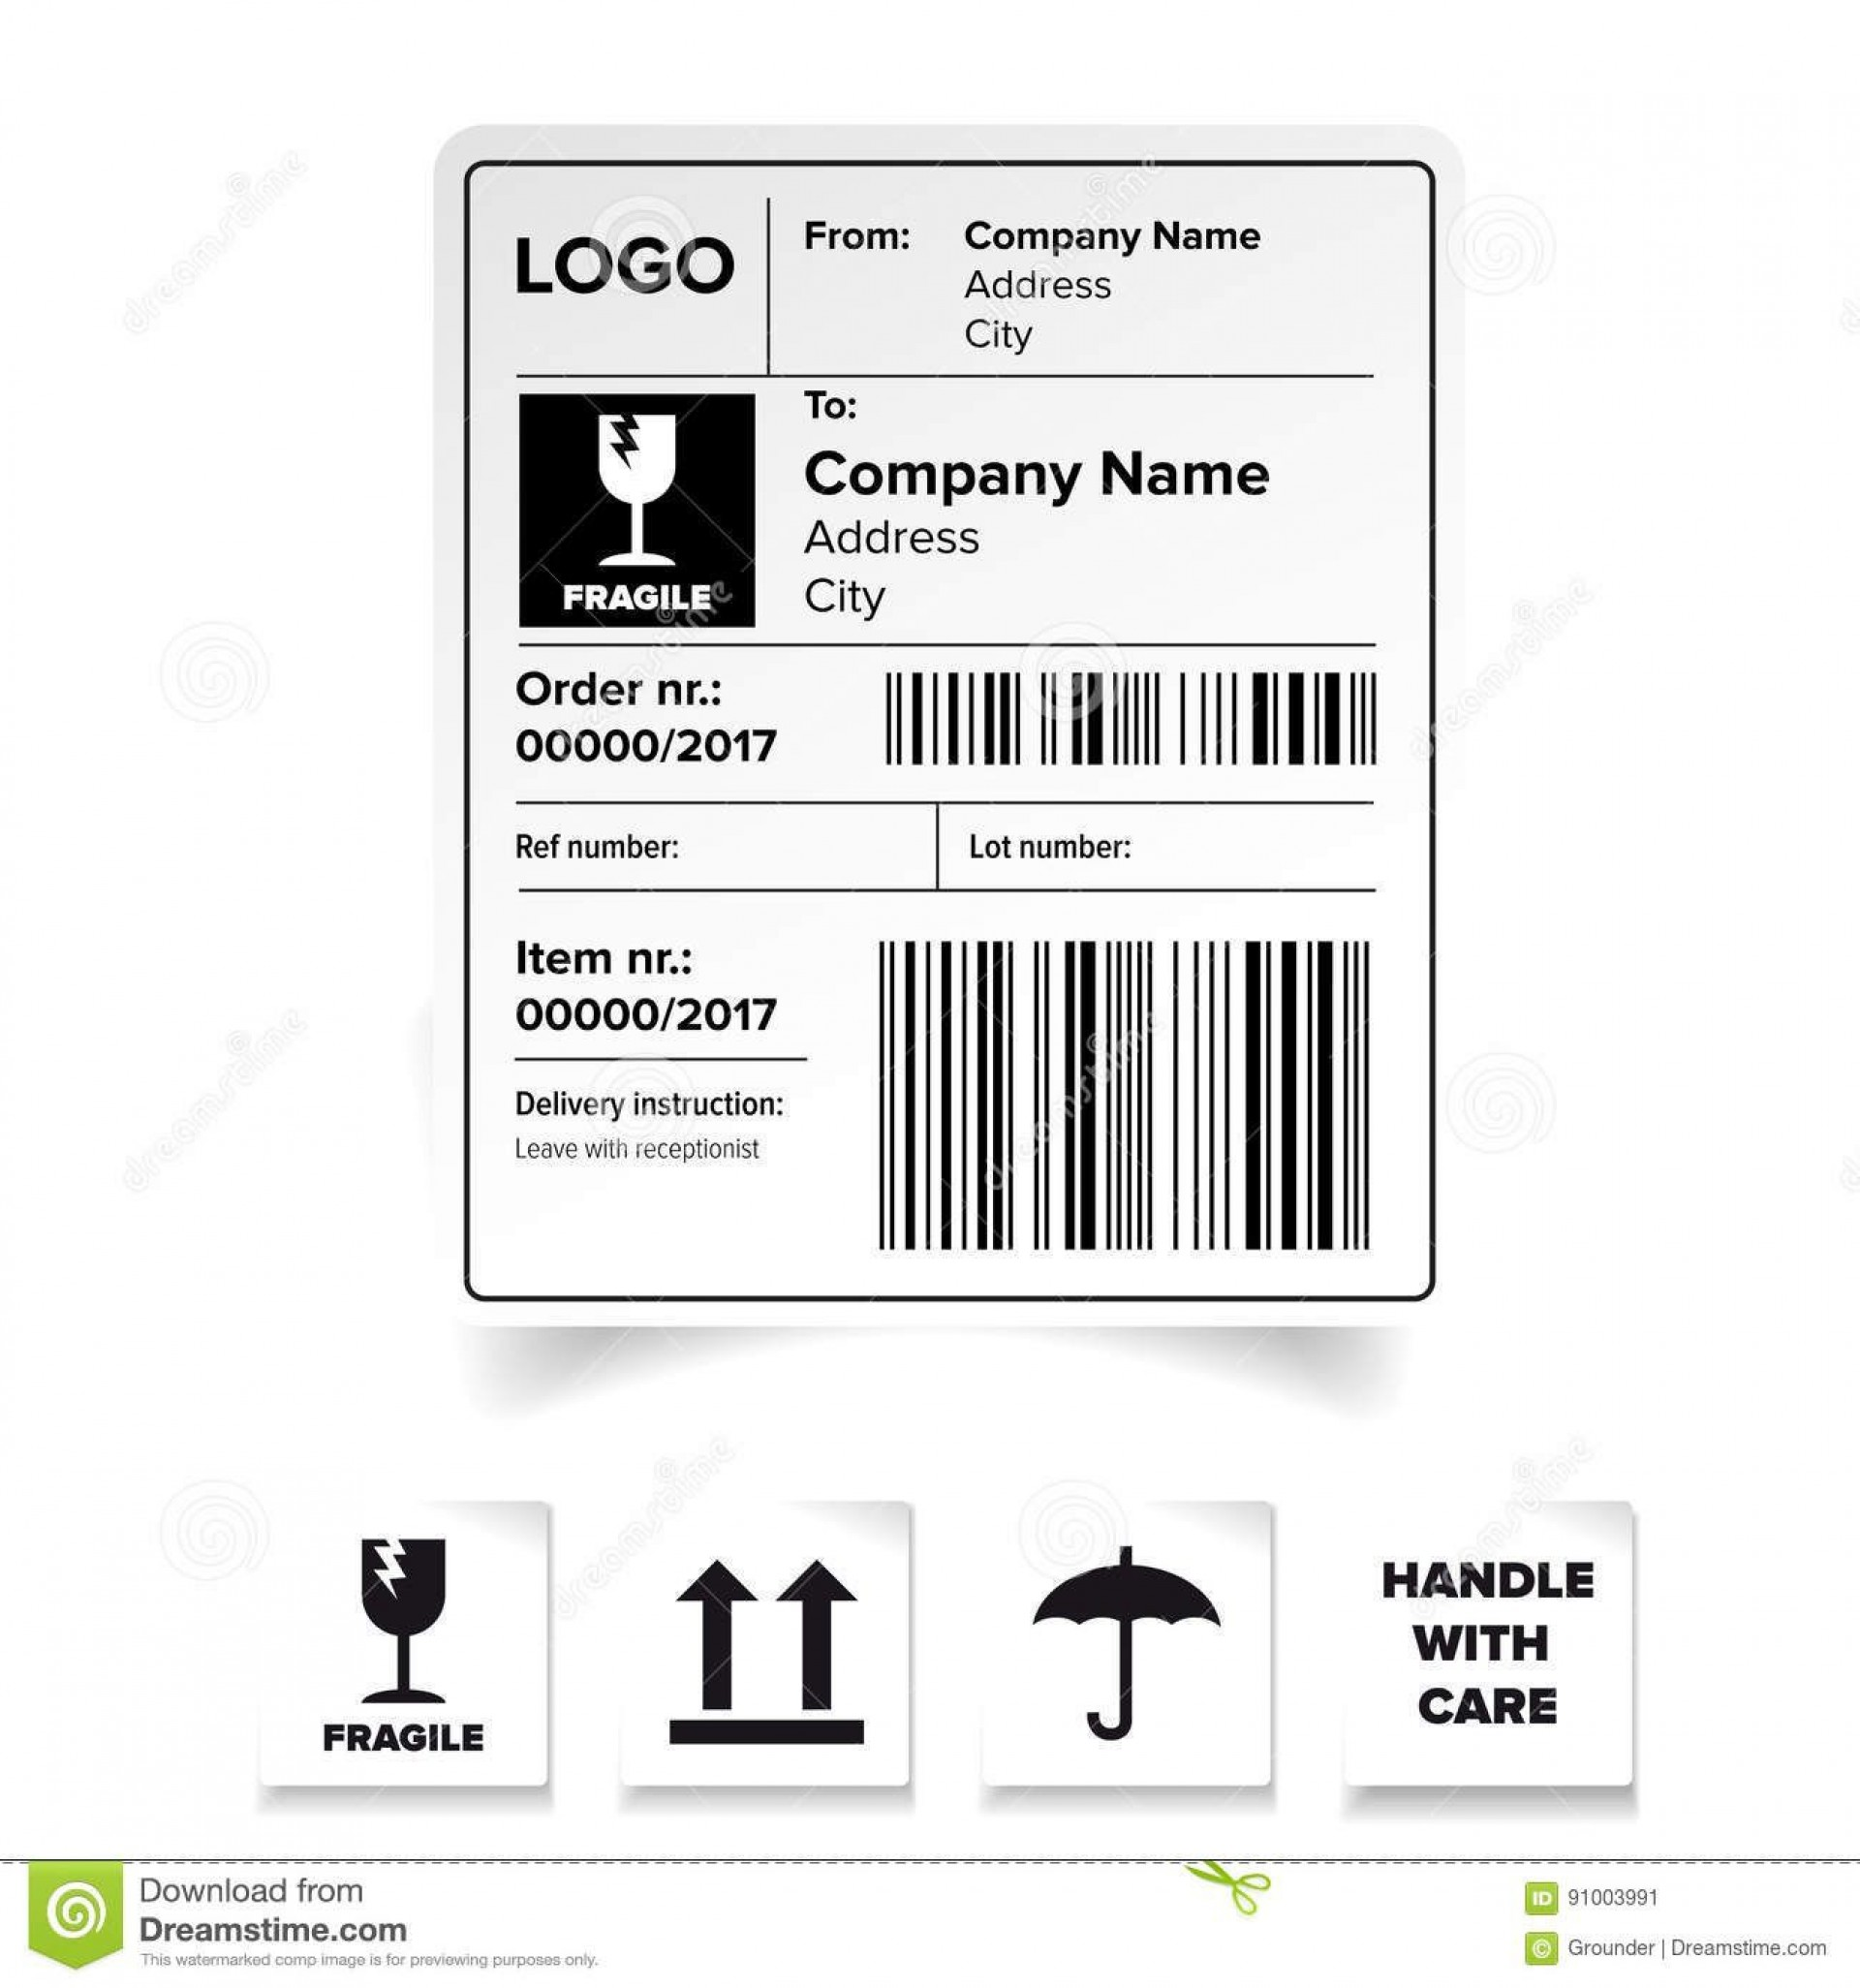 007 Best Free Shipping Label Template Sample  Format Word For Mac1920